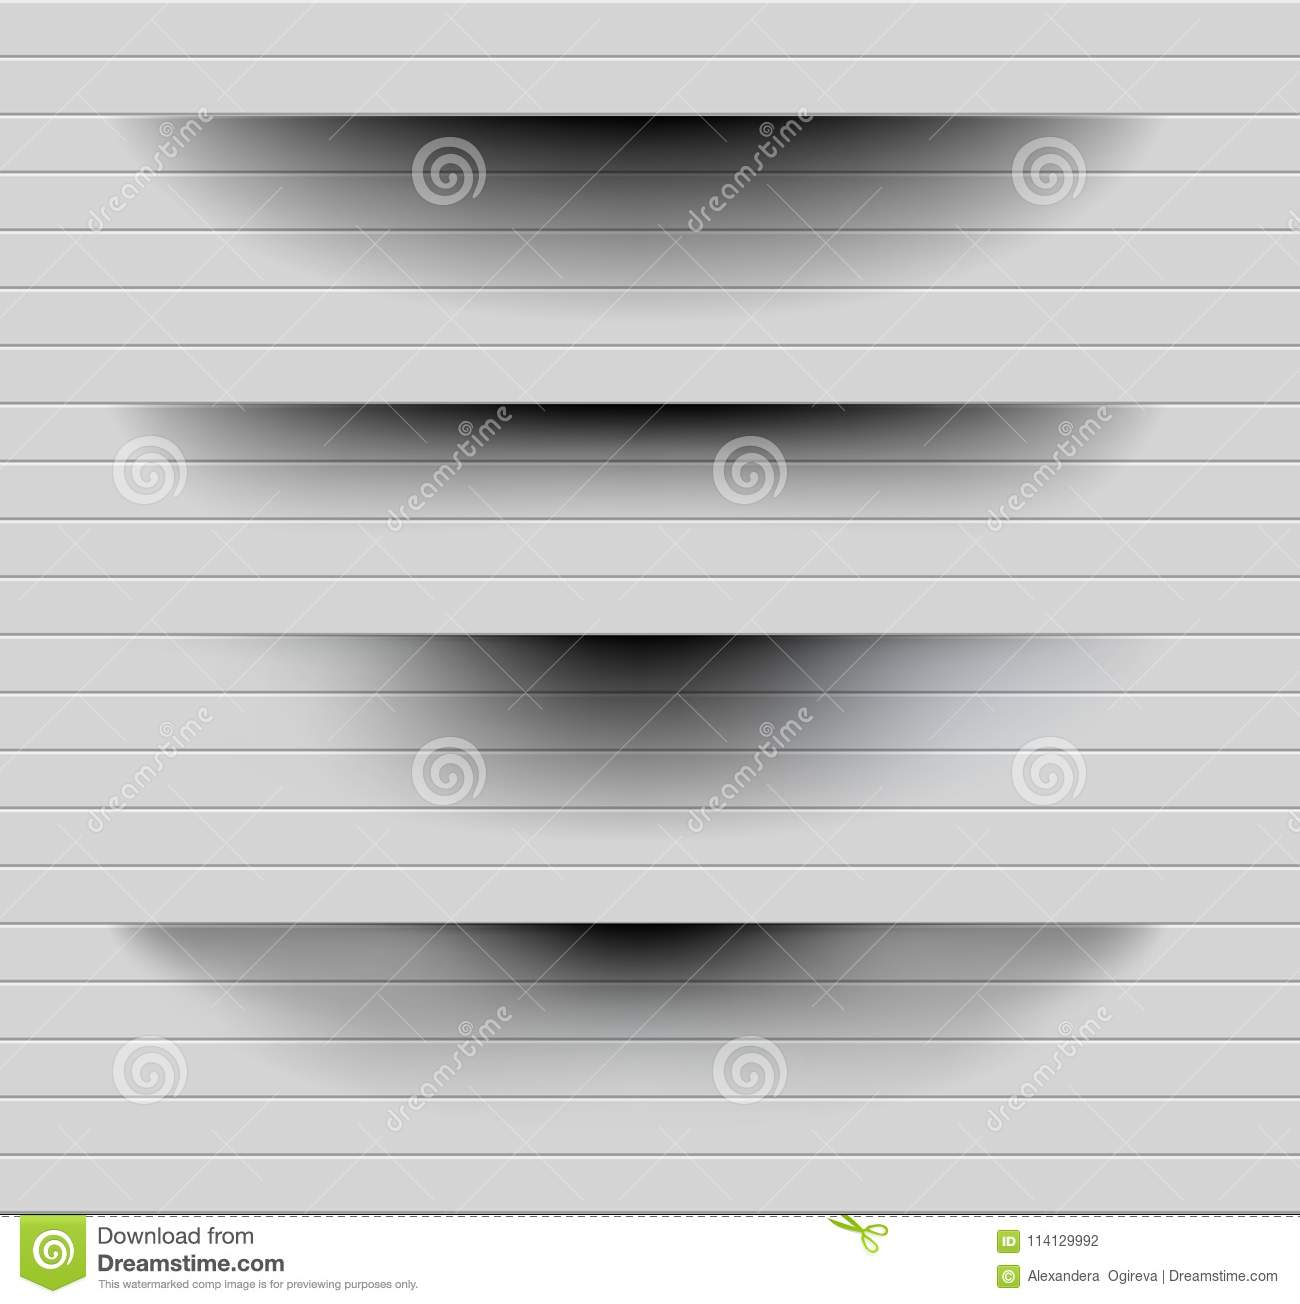 Transparent realistic paper shadow effect set. Web banner. Element for advertising and promotional message on